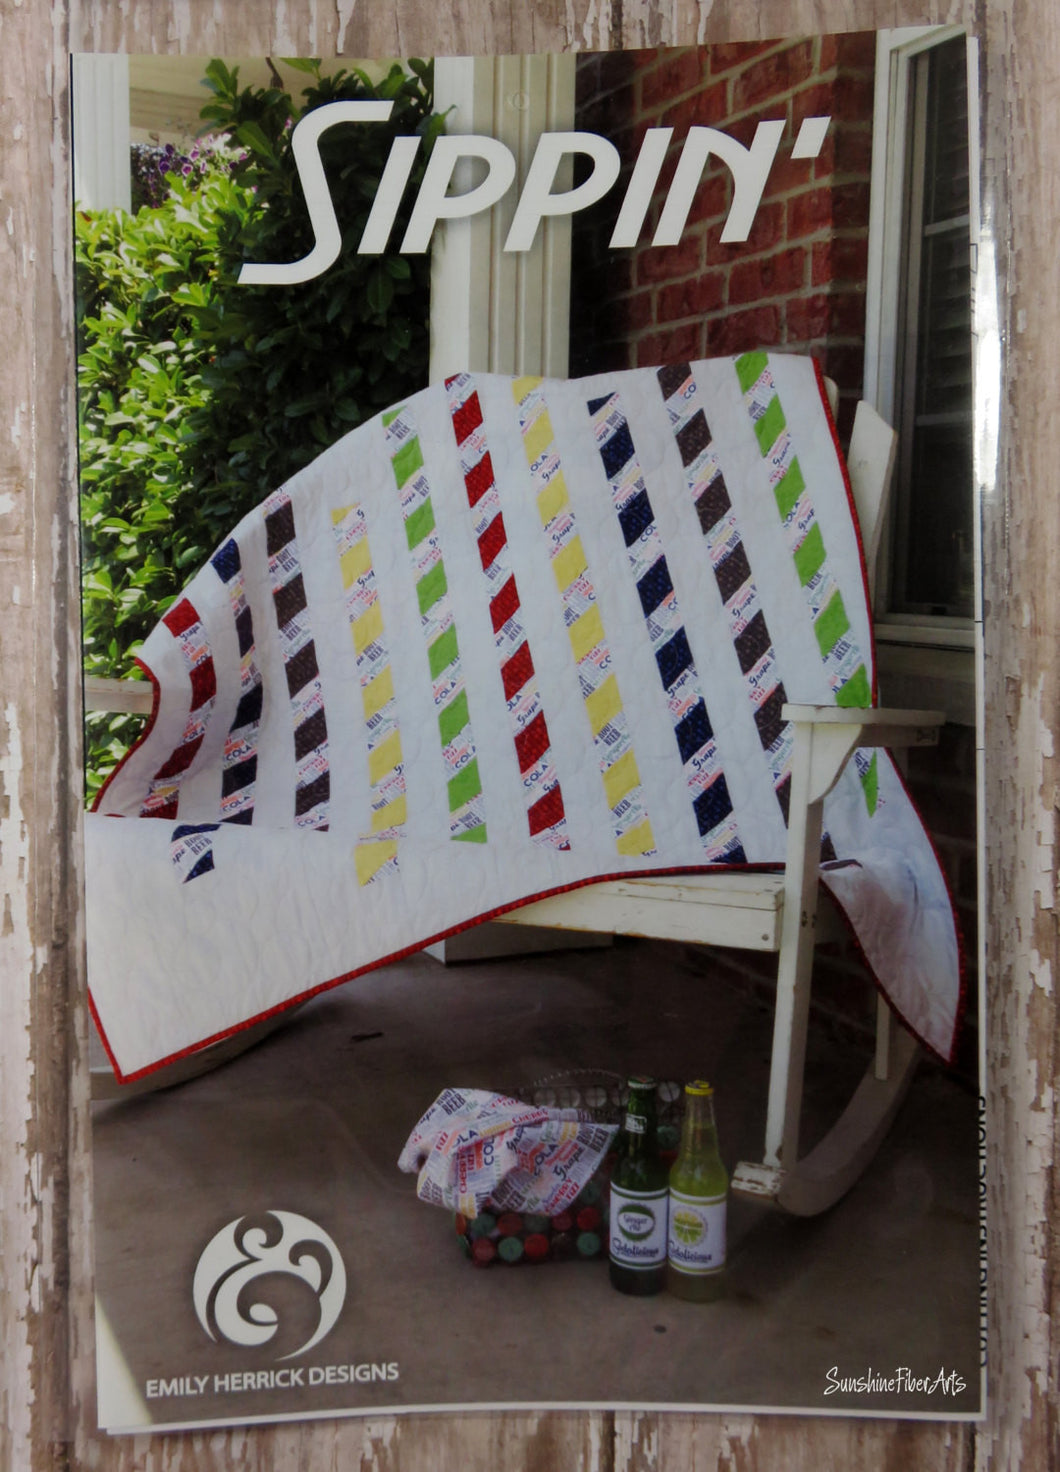 Sippin' Quilt Pattern